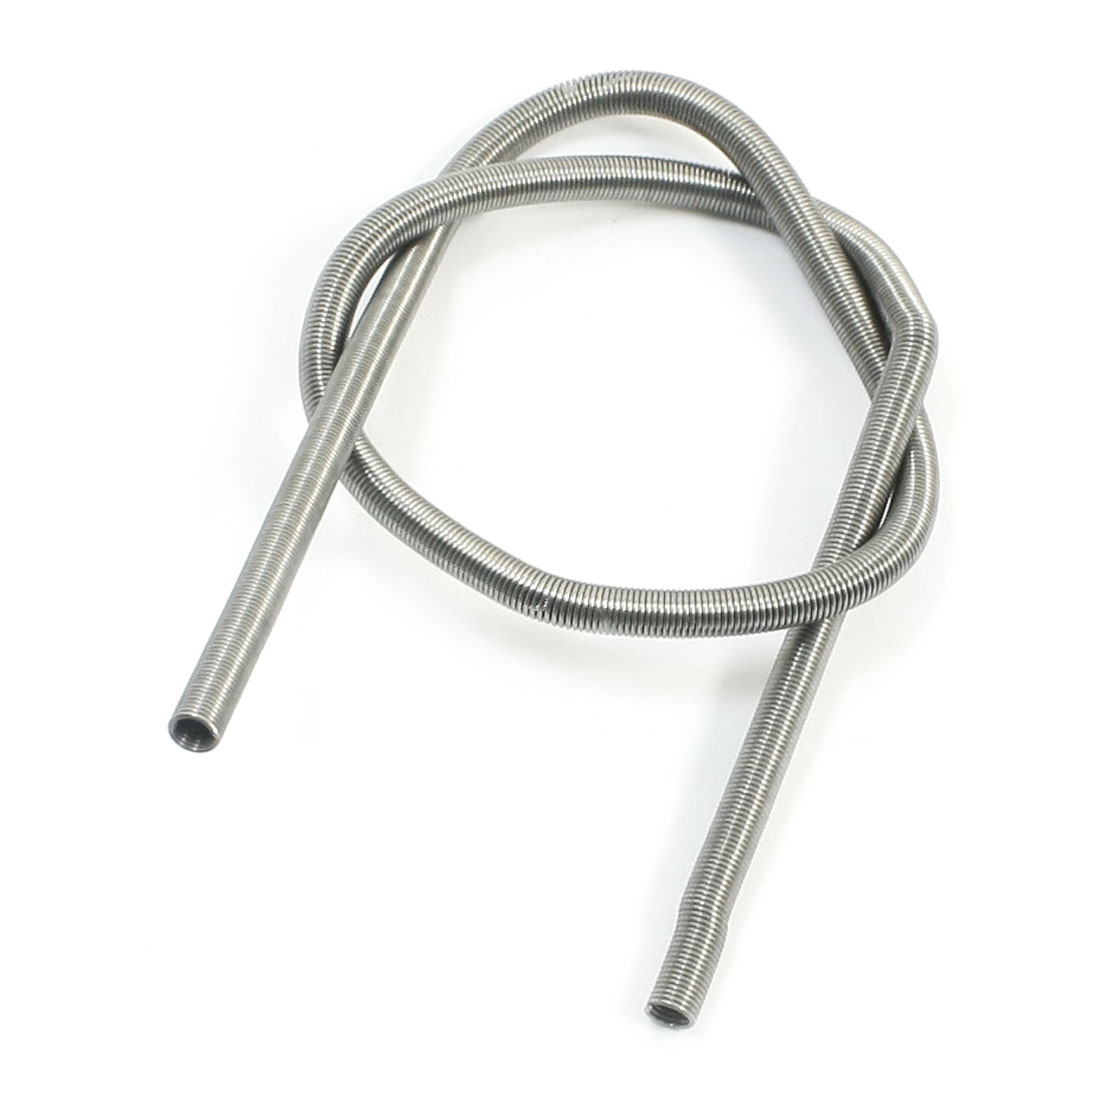 37.5cm Long Kiln Furnace Heating Element Coil Heater Wire 900W AC 220V